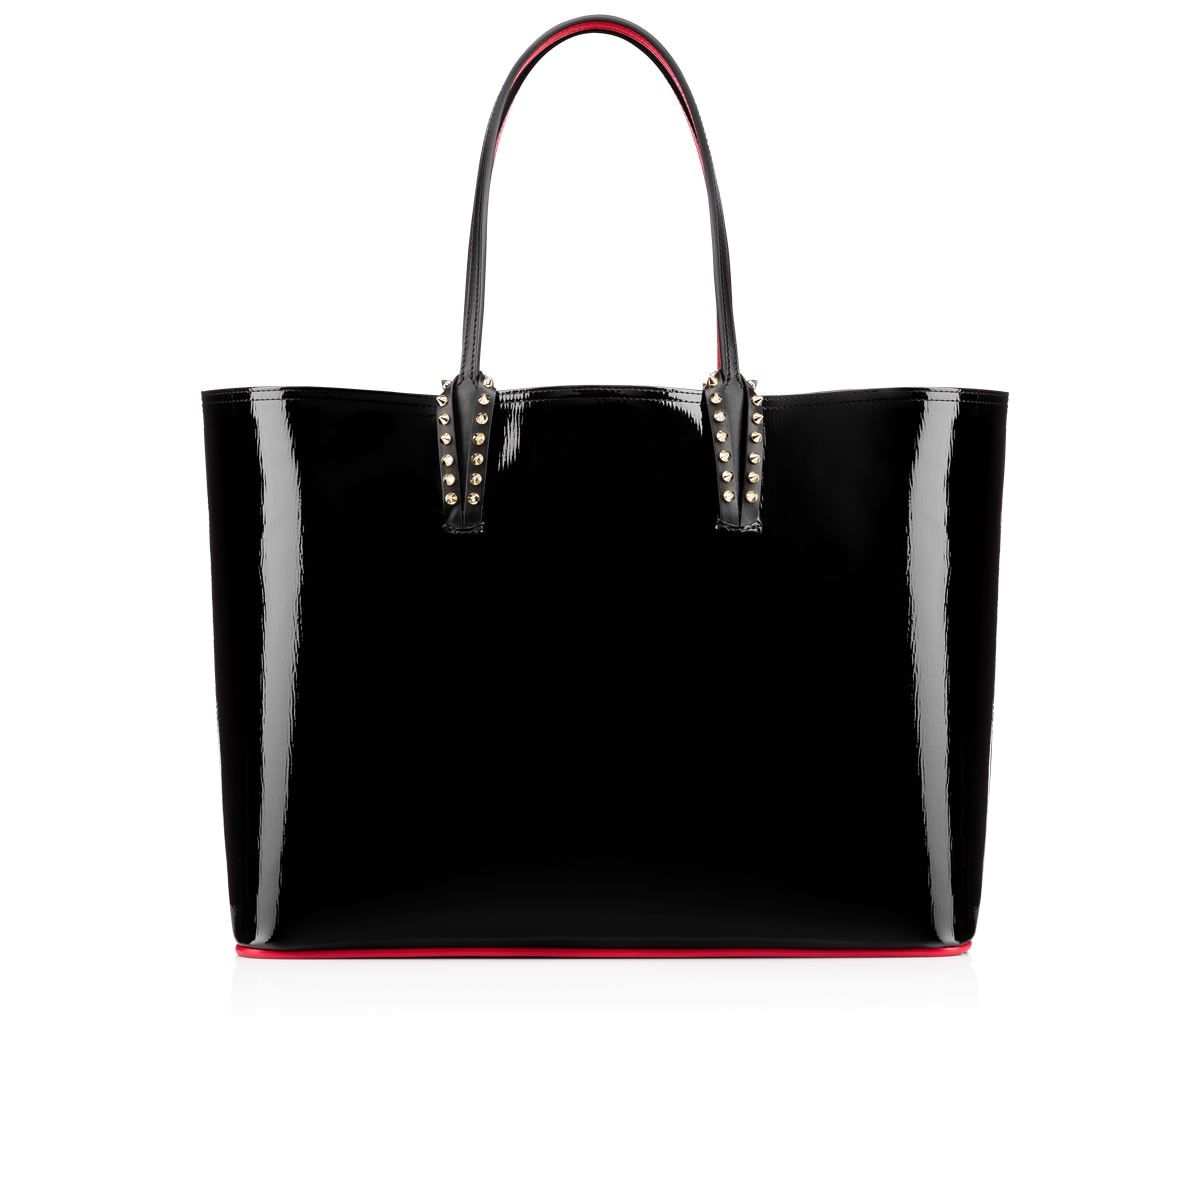 Tote Bag - Badass Tote by VIDA VIDA Get The Latest Fashion Clearance Clearance Store if1d7